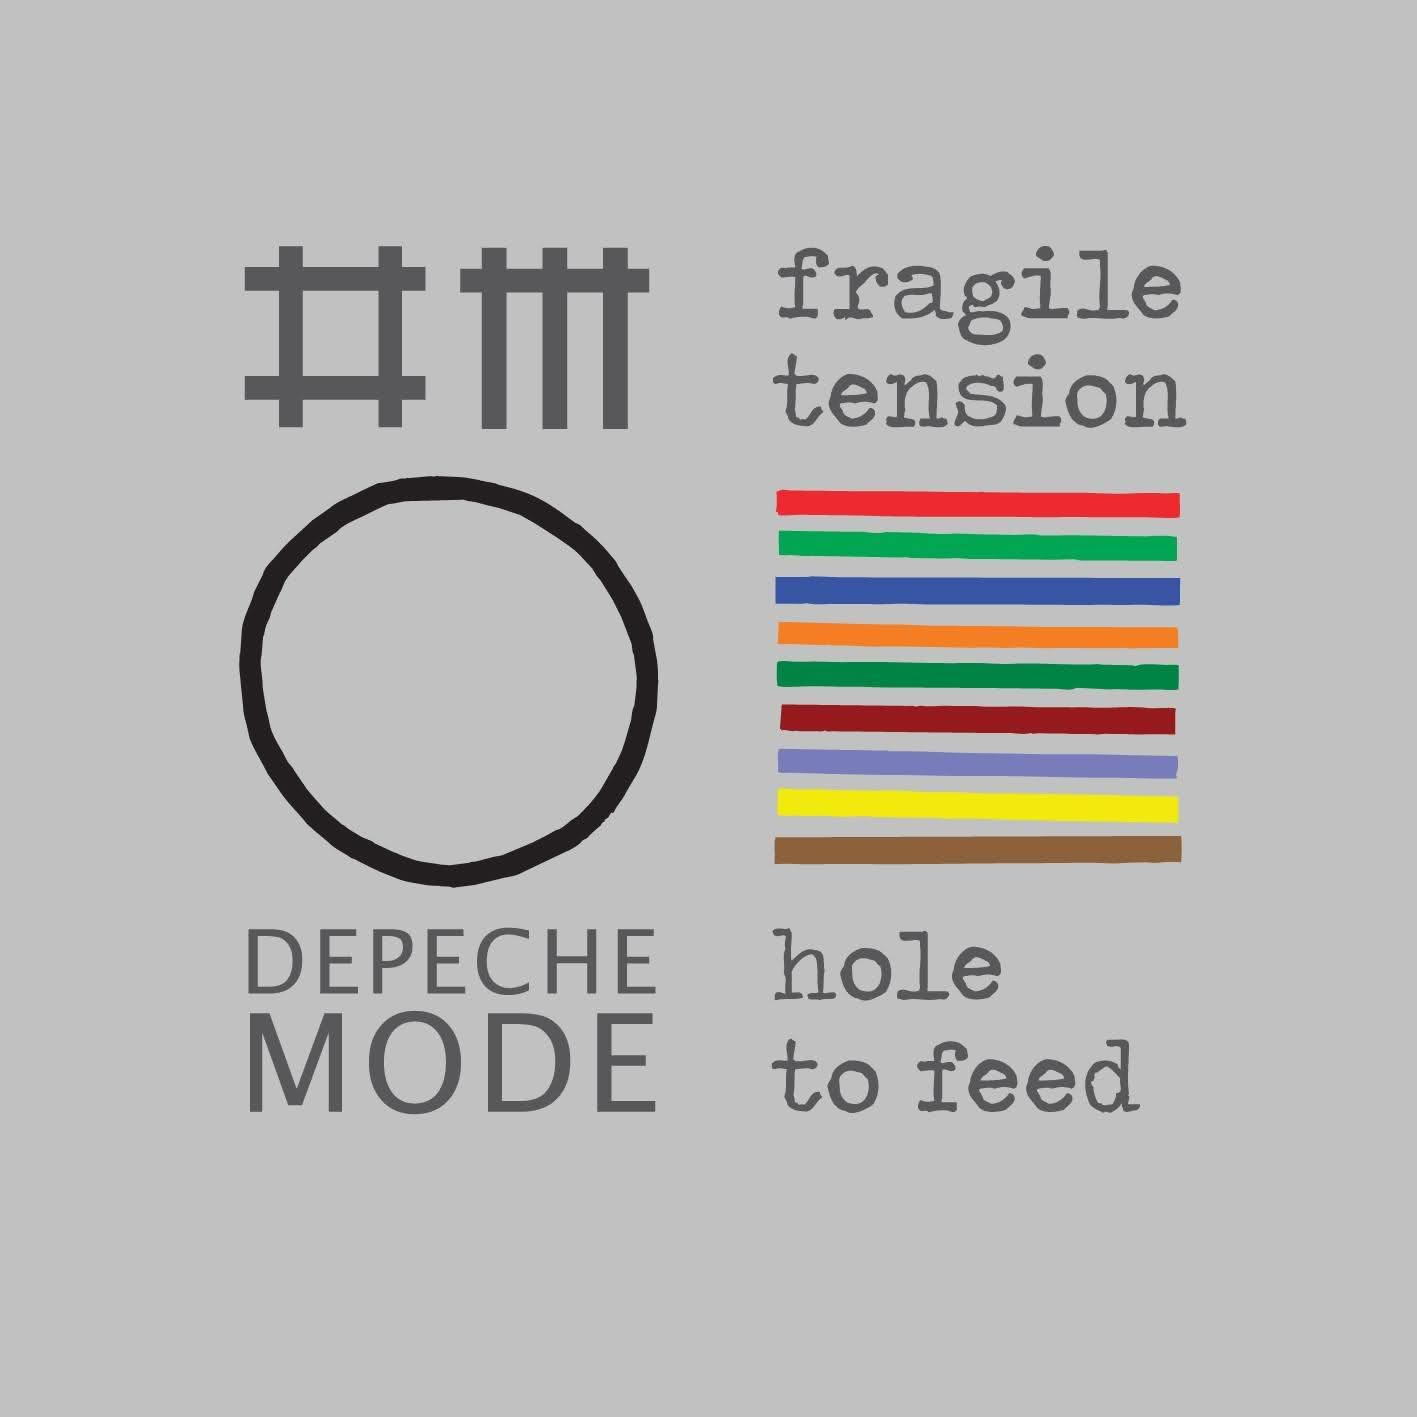 Fragile tension depeche mode video